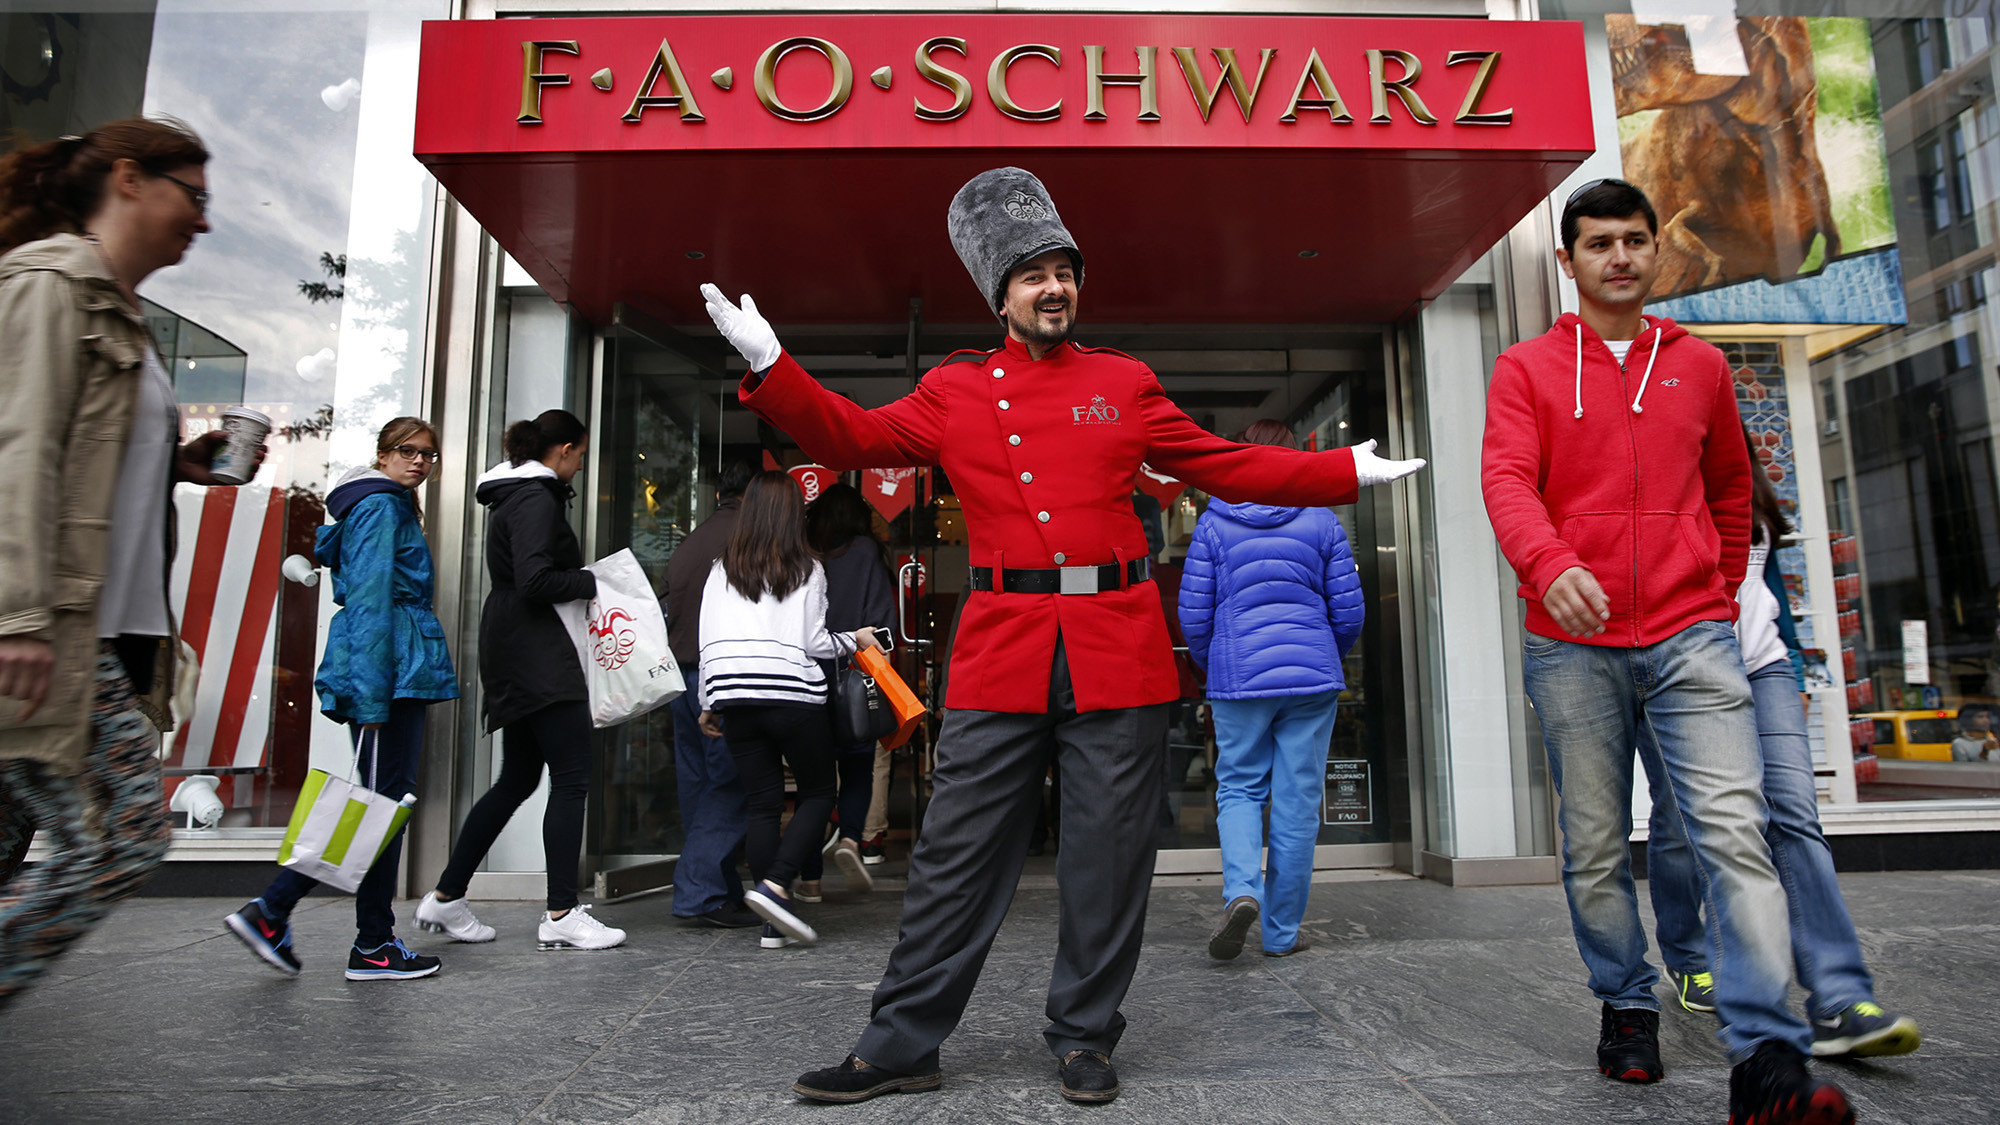 FAO Schwarz's toy soldiers are no match for Manhattan's sky-high rents